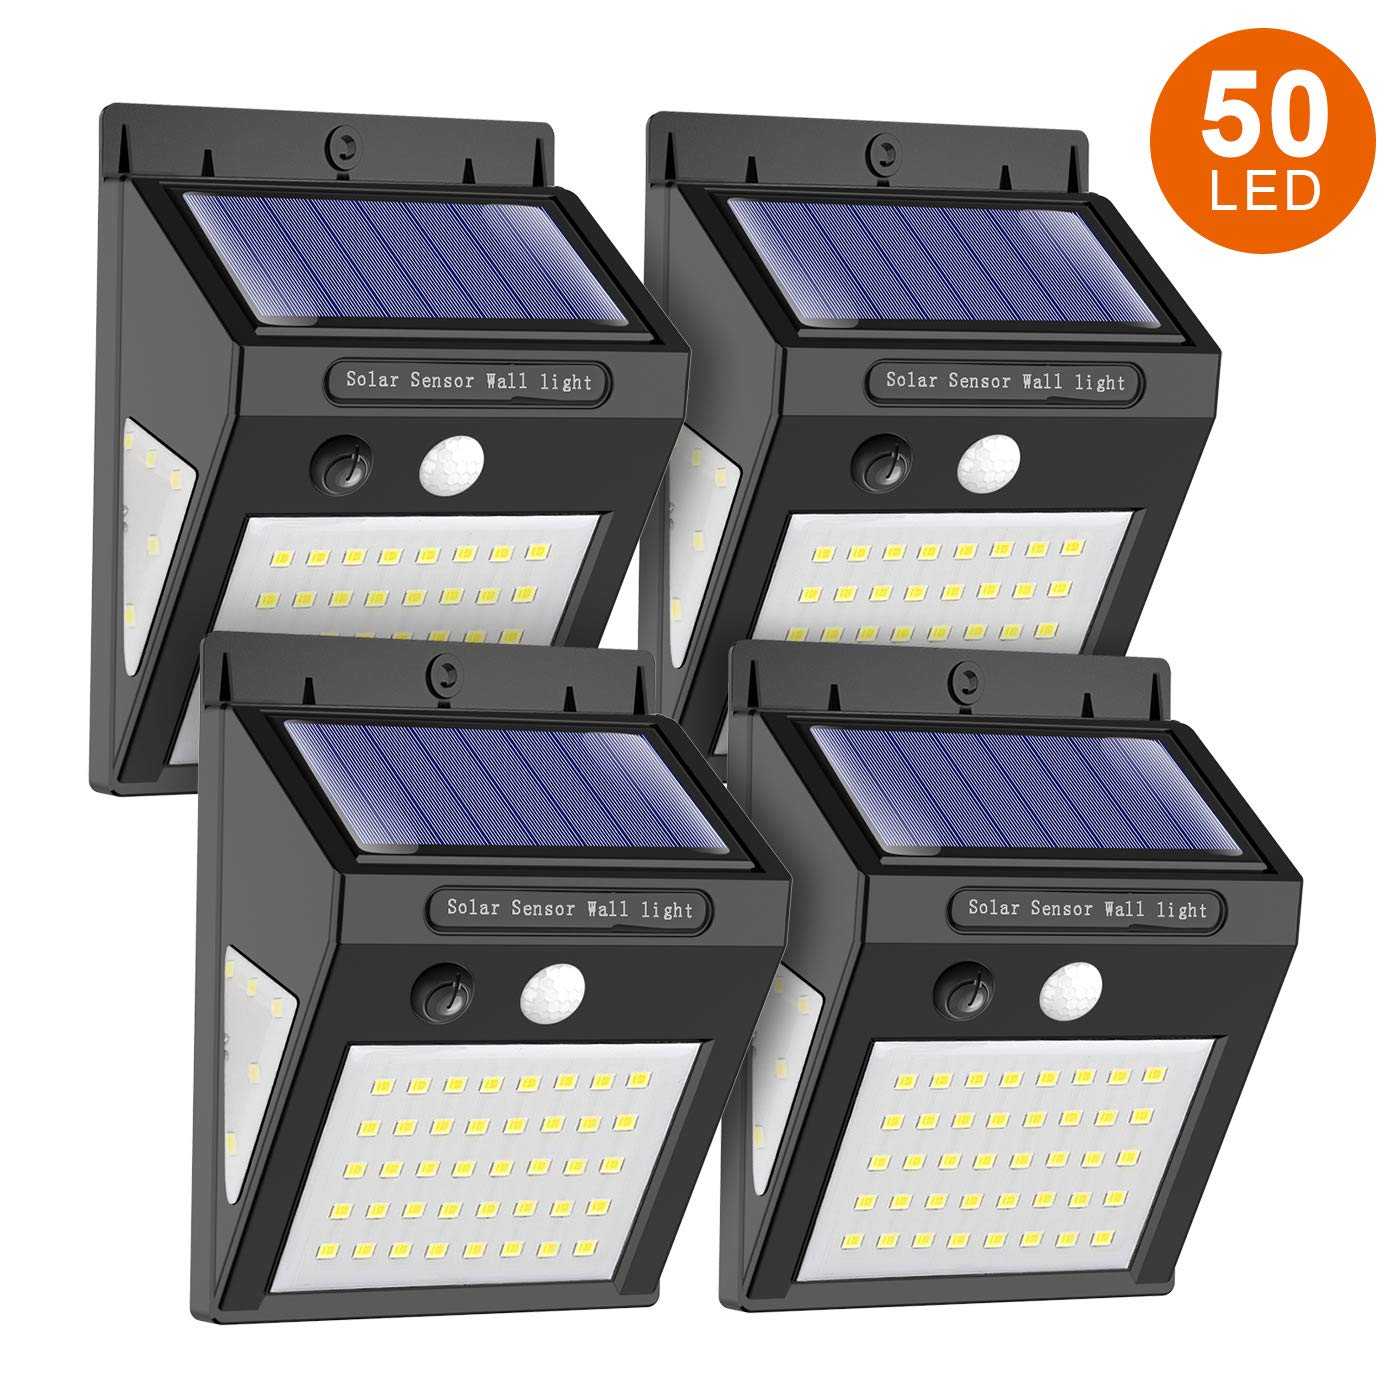 MODAR 50 LED Solar Light Outdoor Motion Sensor Lights with 120° Wide-Angle Detection 270° Lighting Angle, Waterproof Wireless Bright Solar Security Lights for Garage Yard Patio Garden Pathway(4 Pack)